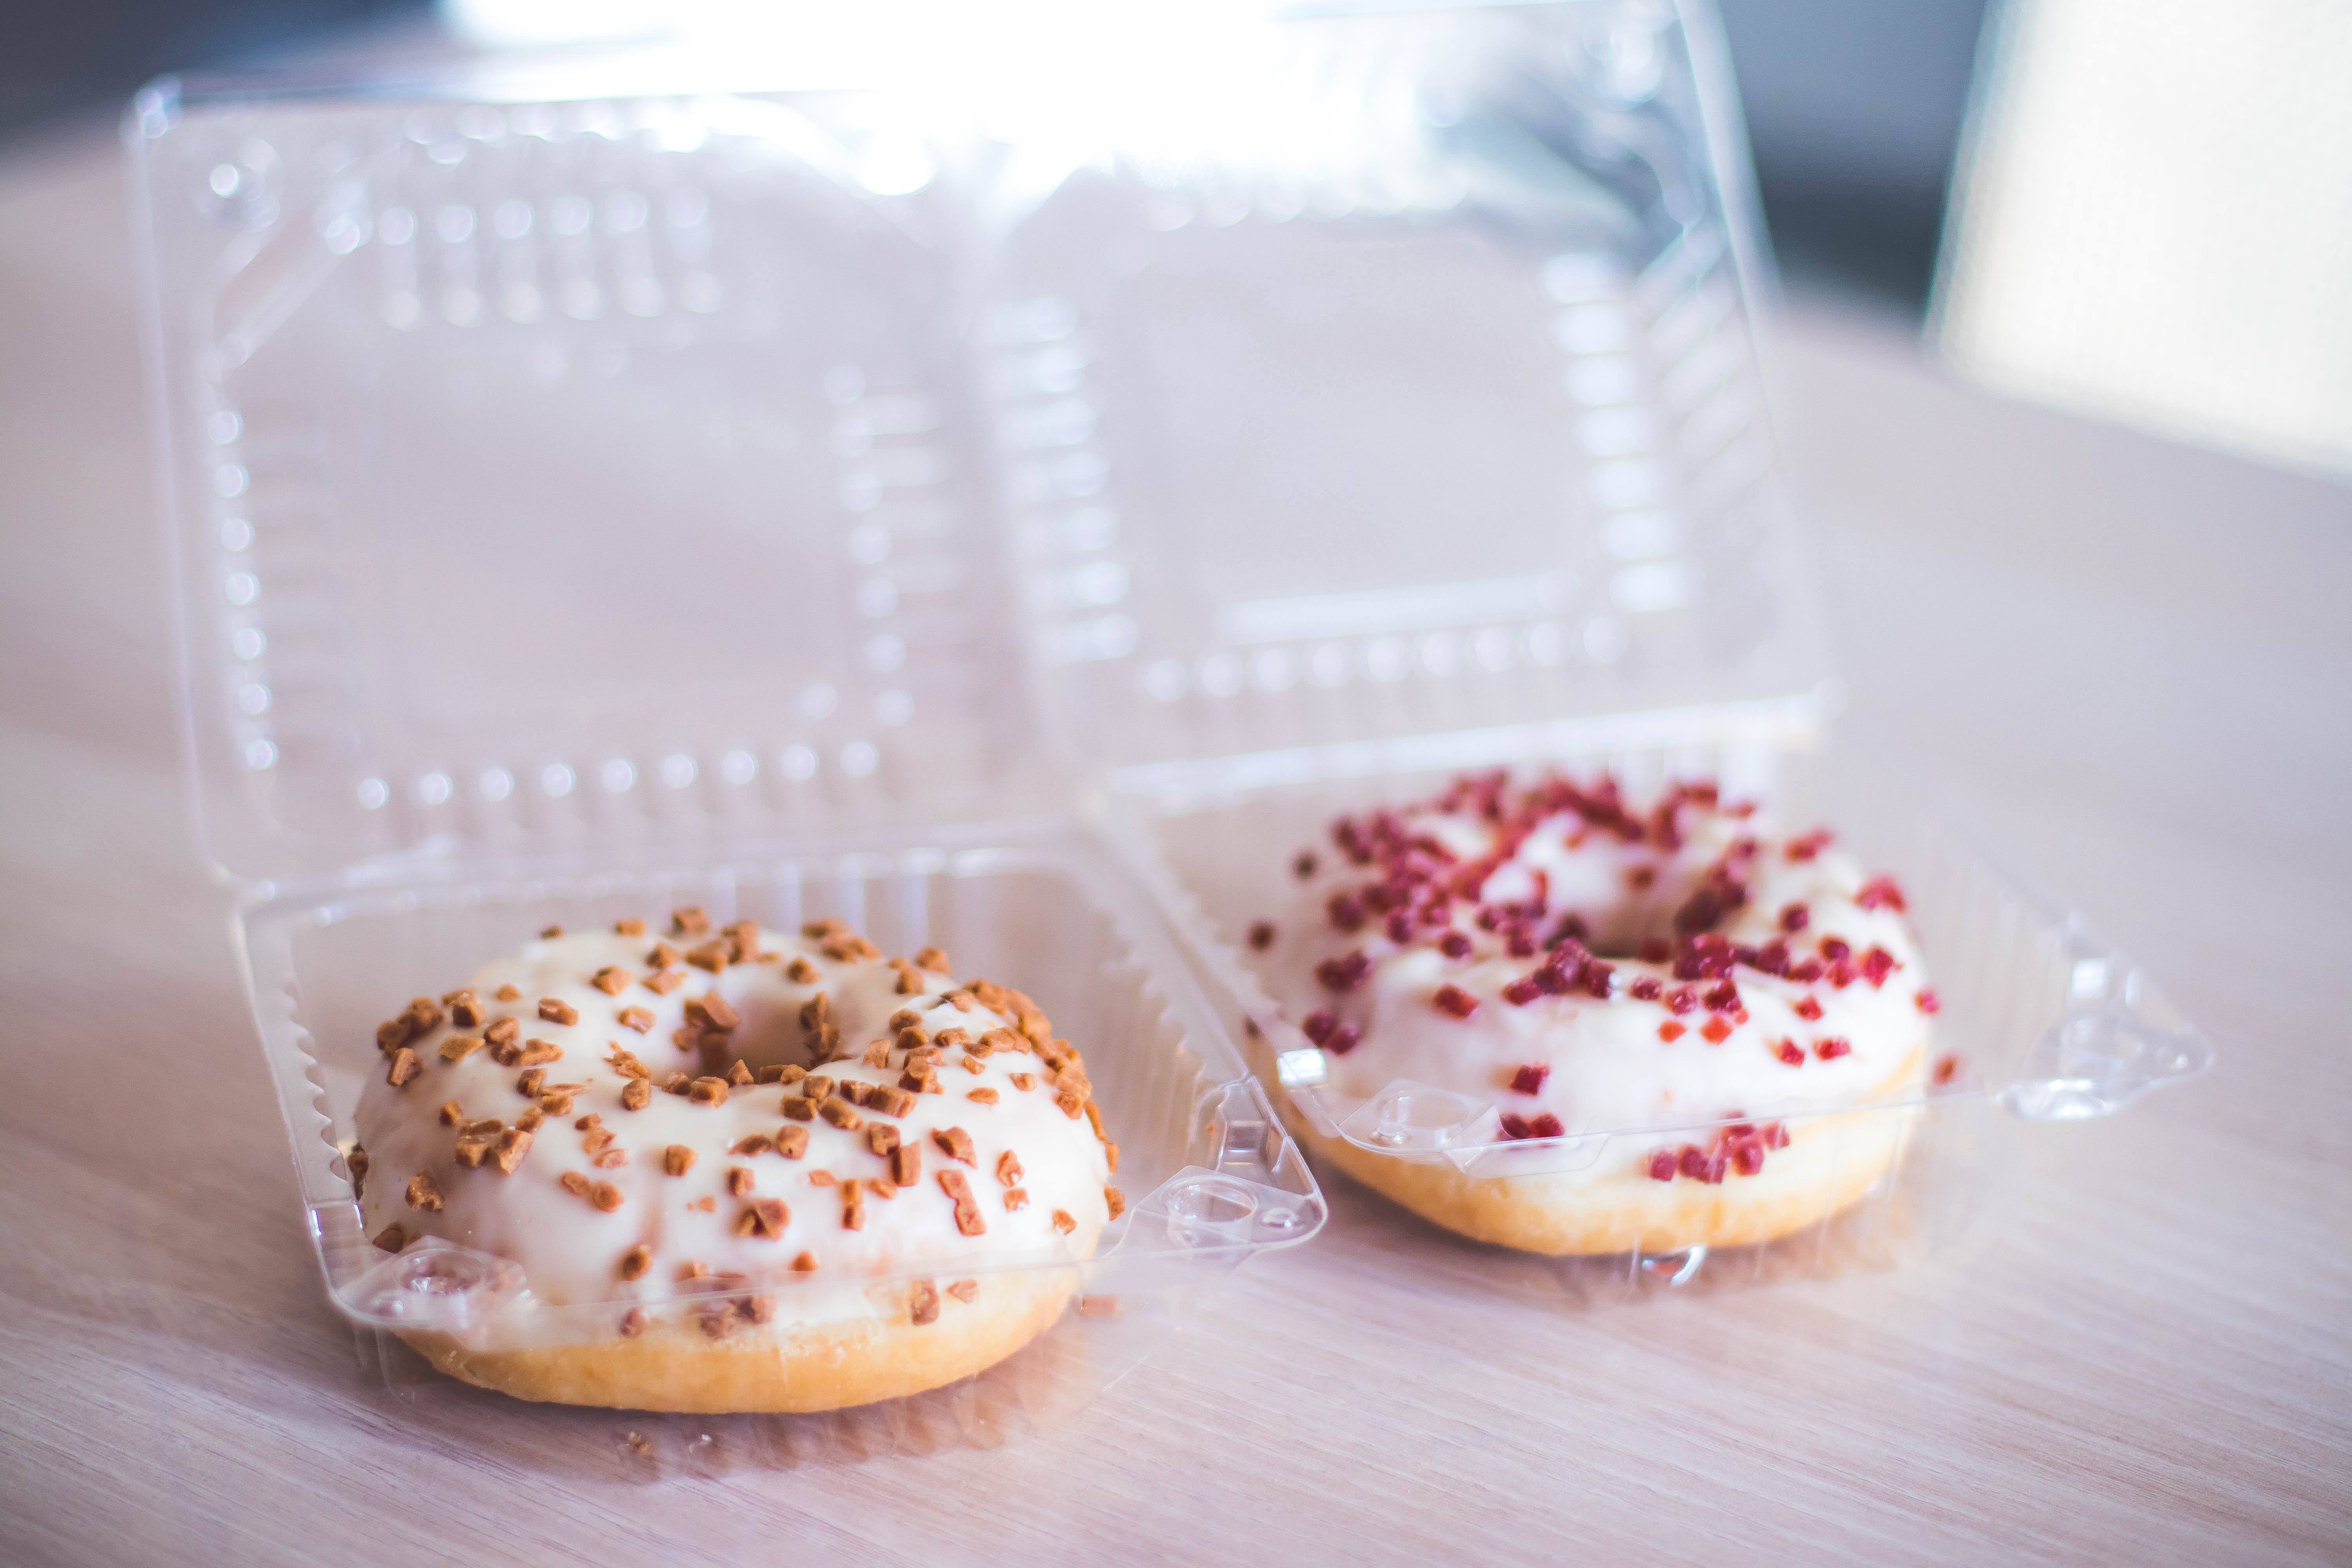 Two Donuts in Clear Plastic Packs